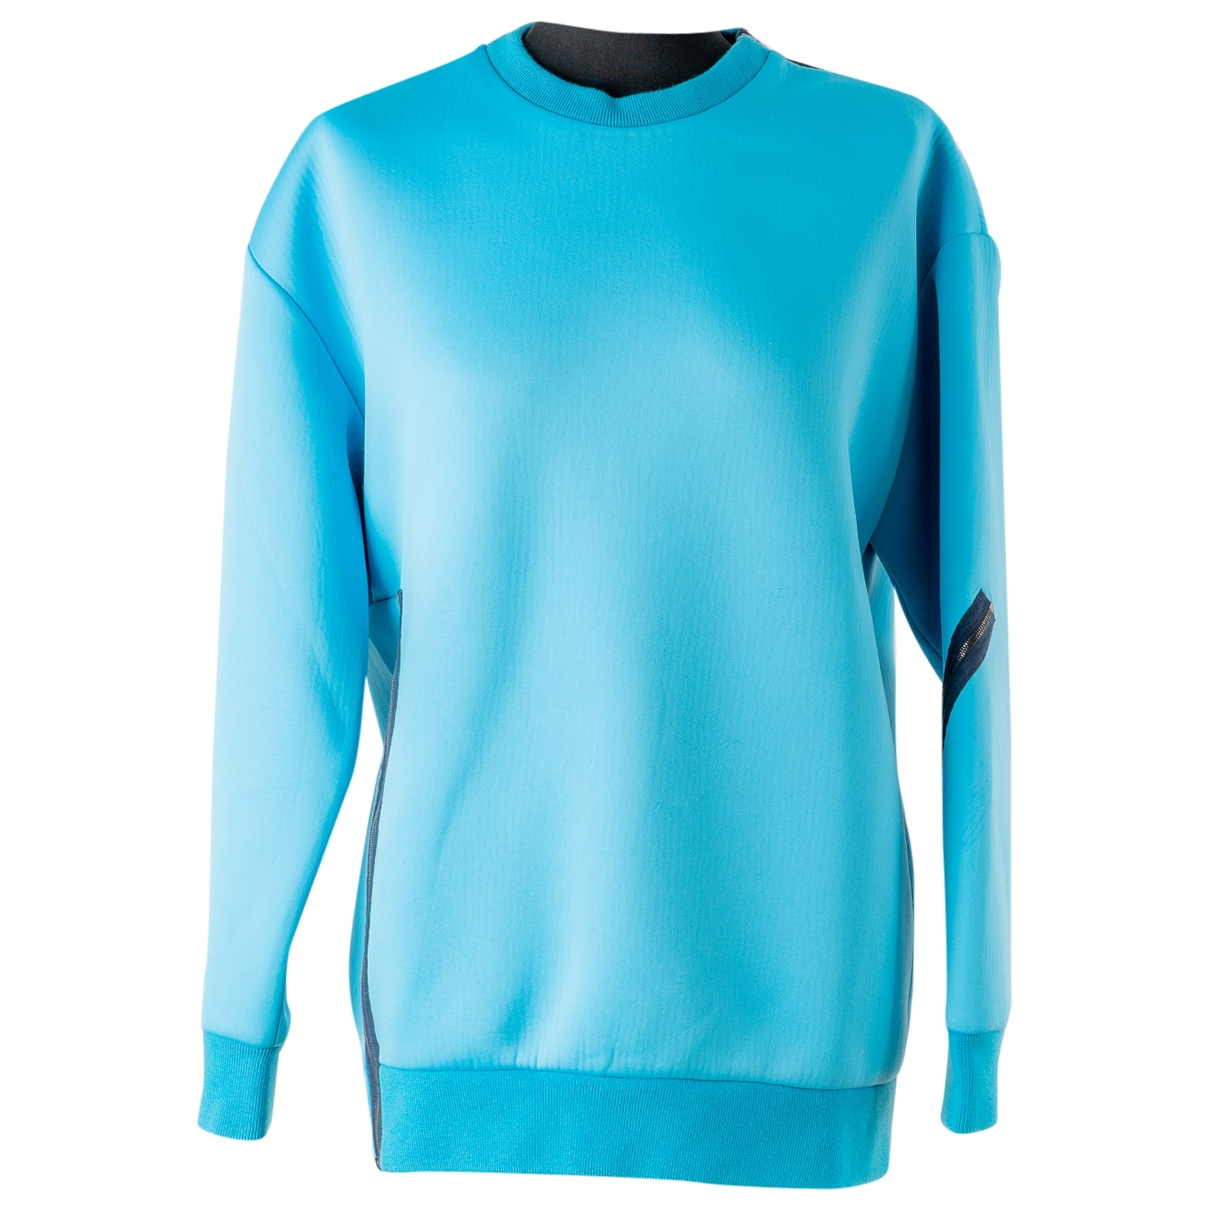 3.1 Phillip Lim \N Turquoise Knitwear for Women XS International